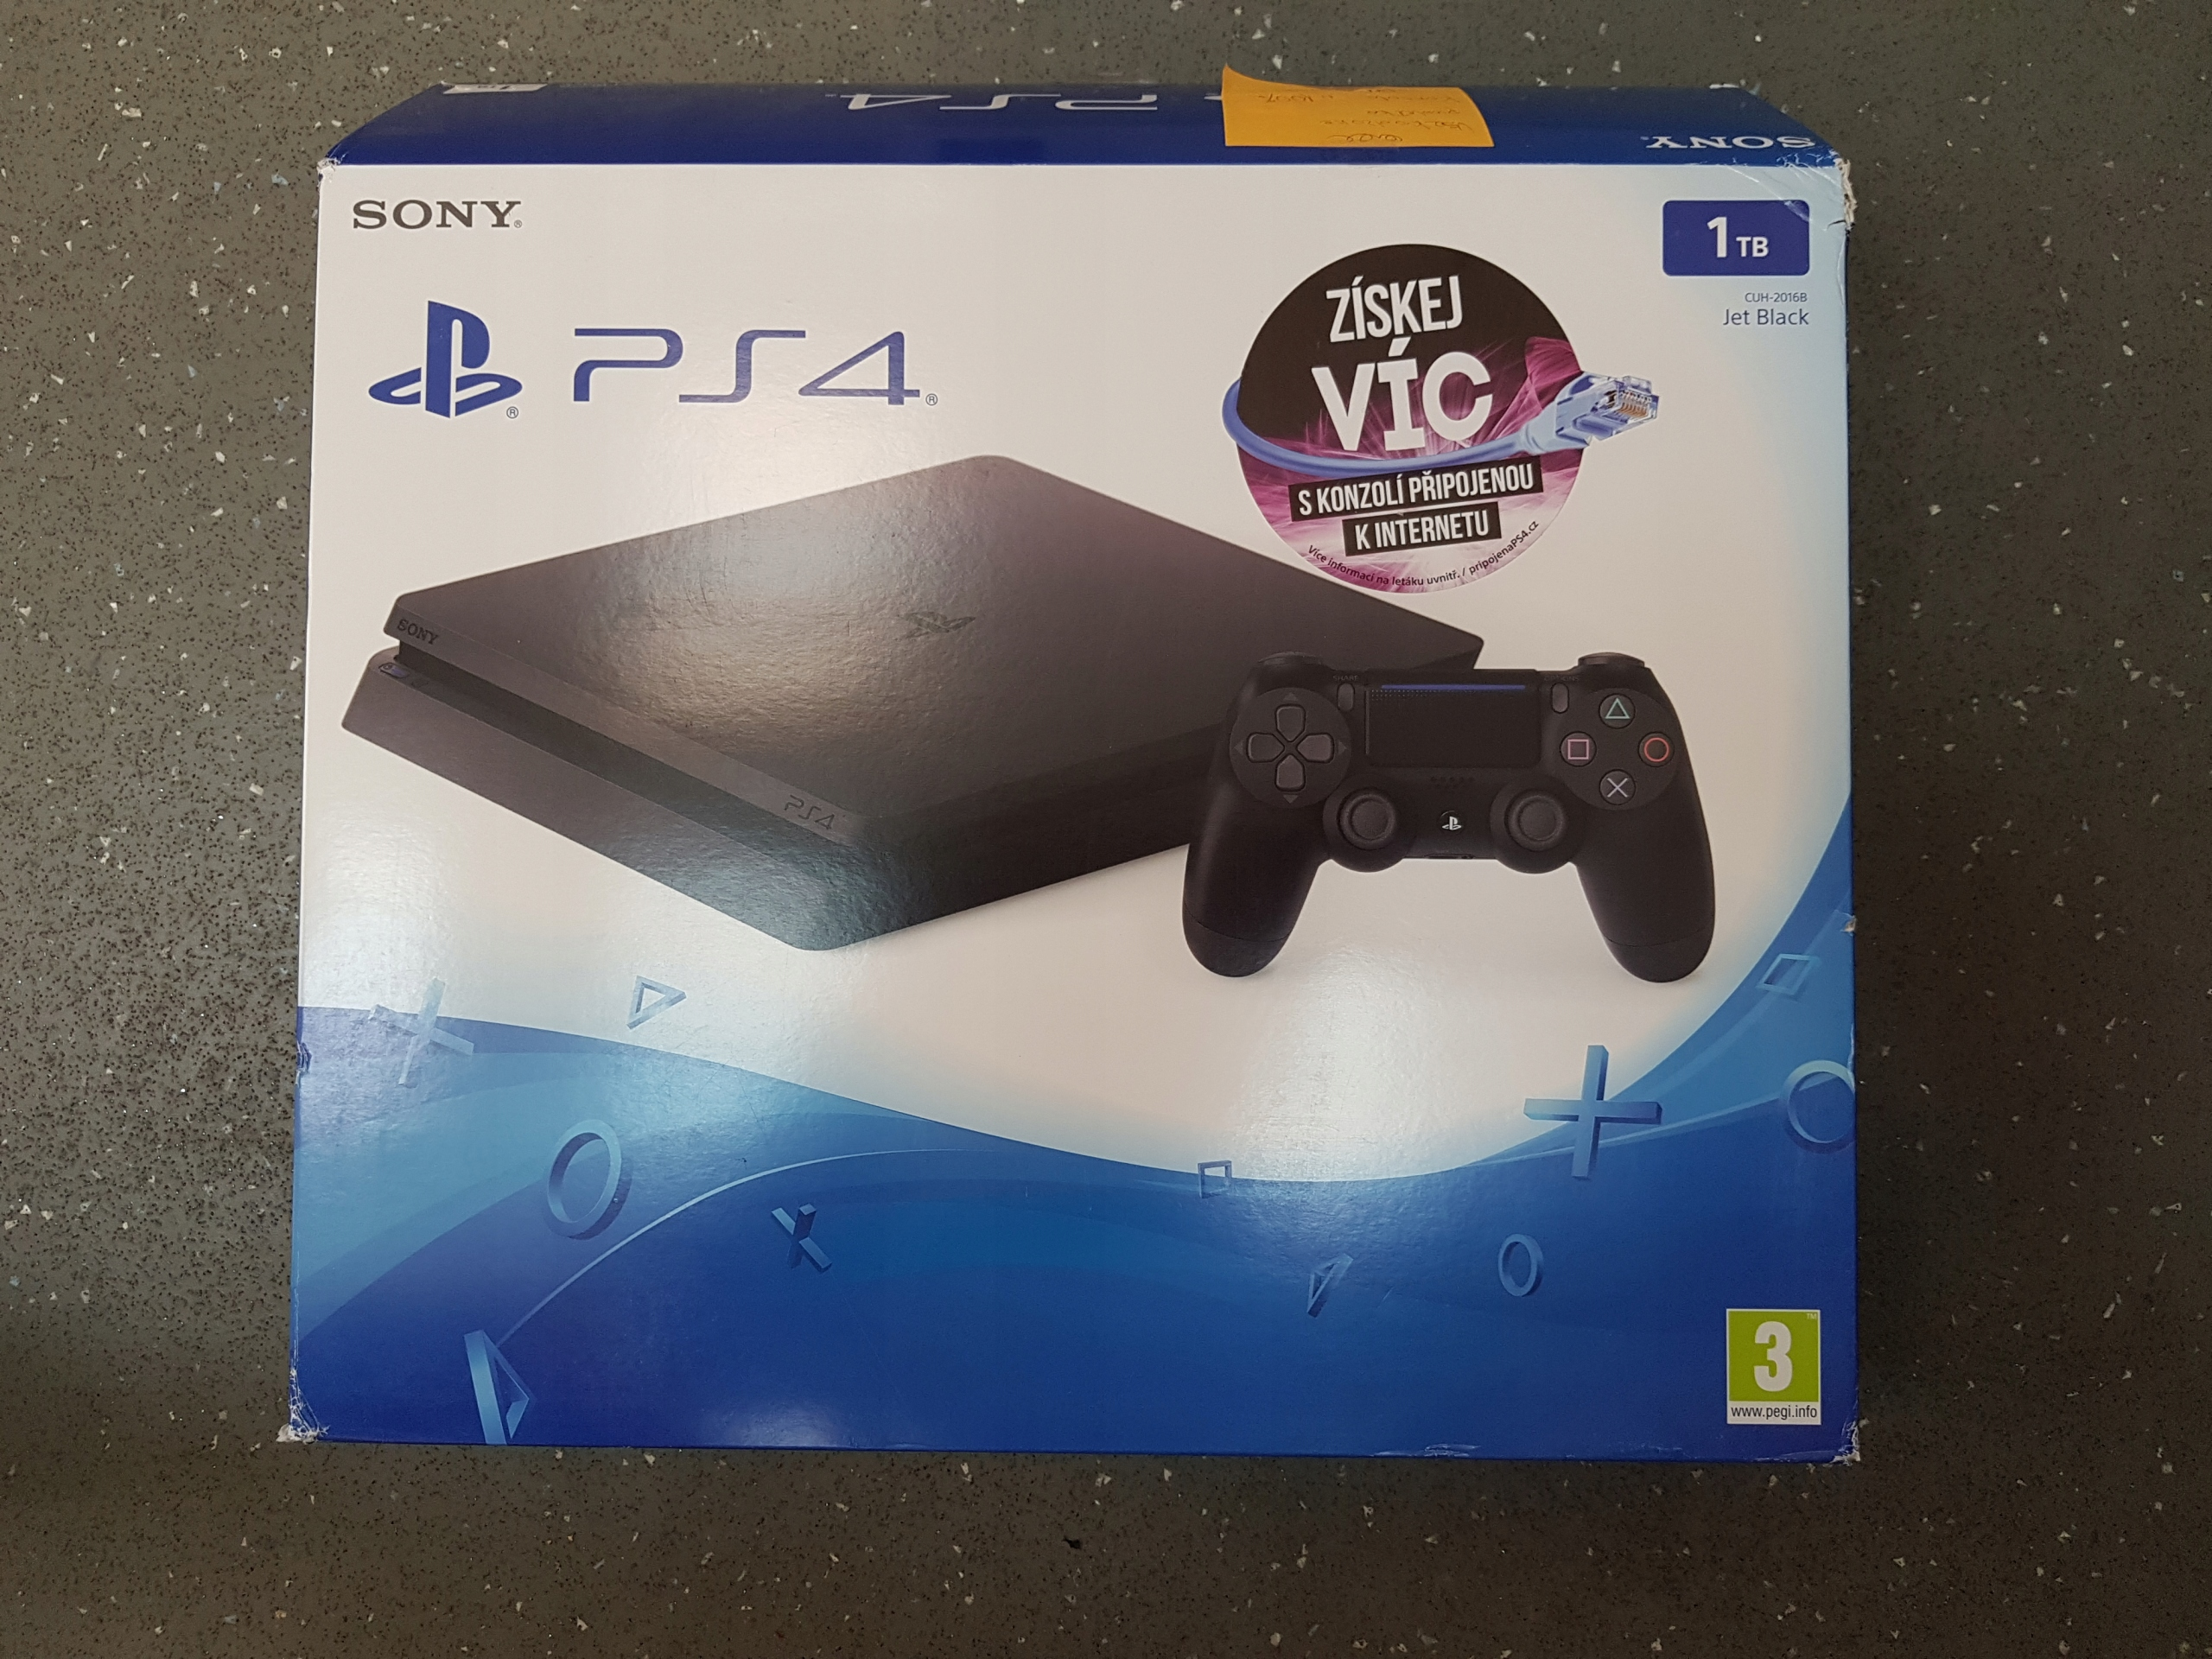 Sony Playstation 4 Slim 1tb Jet Black Cuh 2016b 7471048229 1 Tb